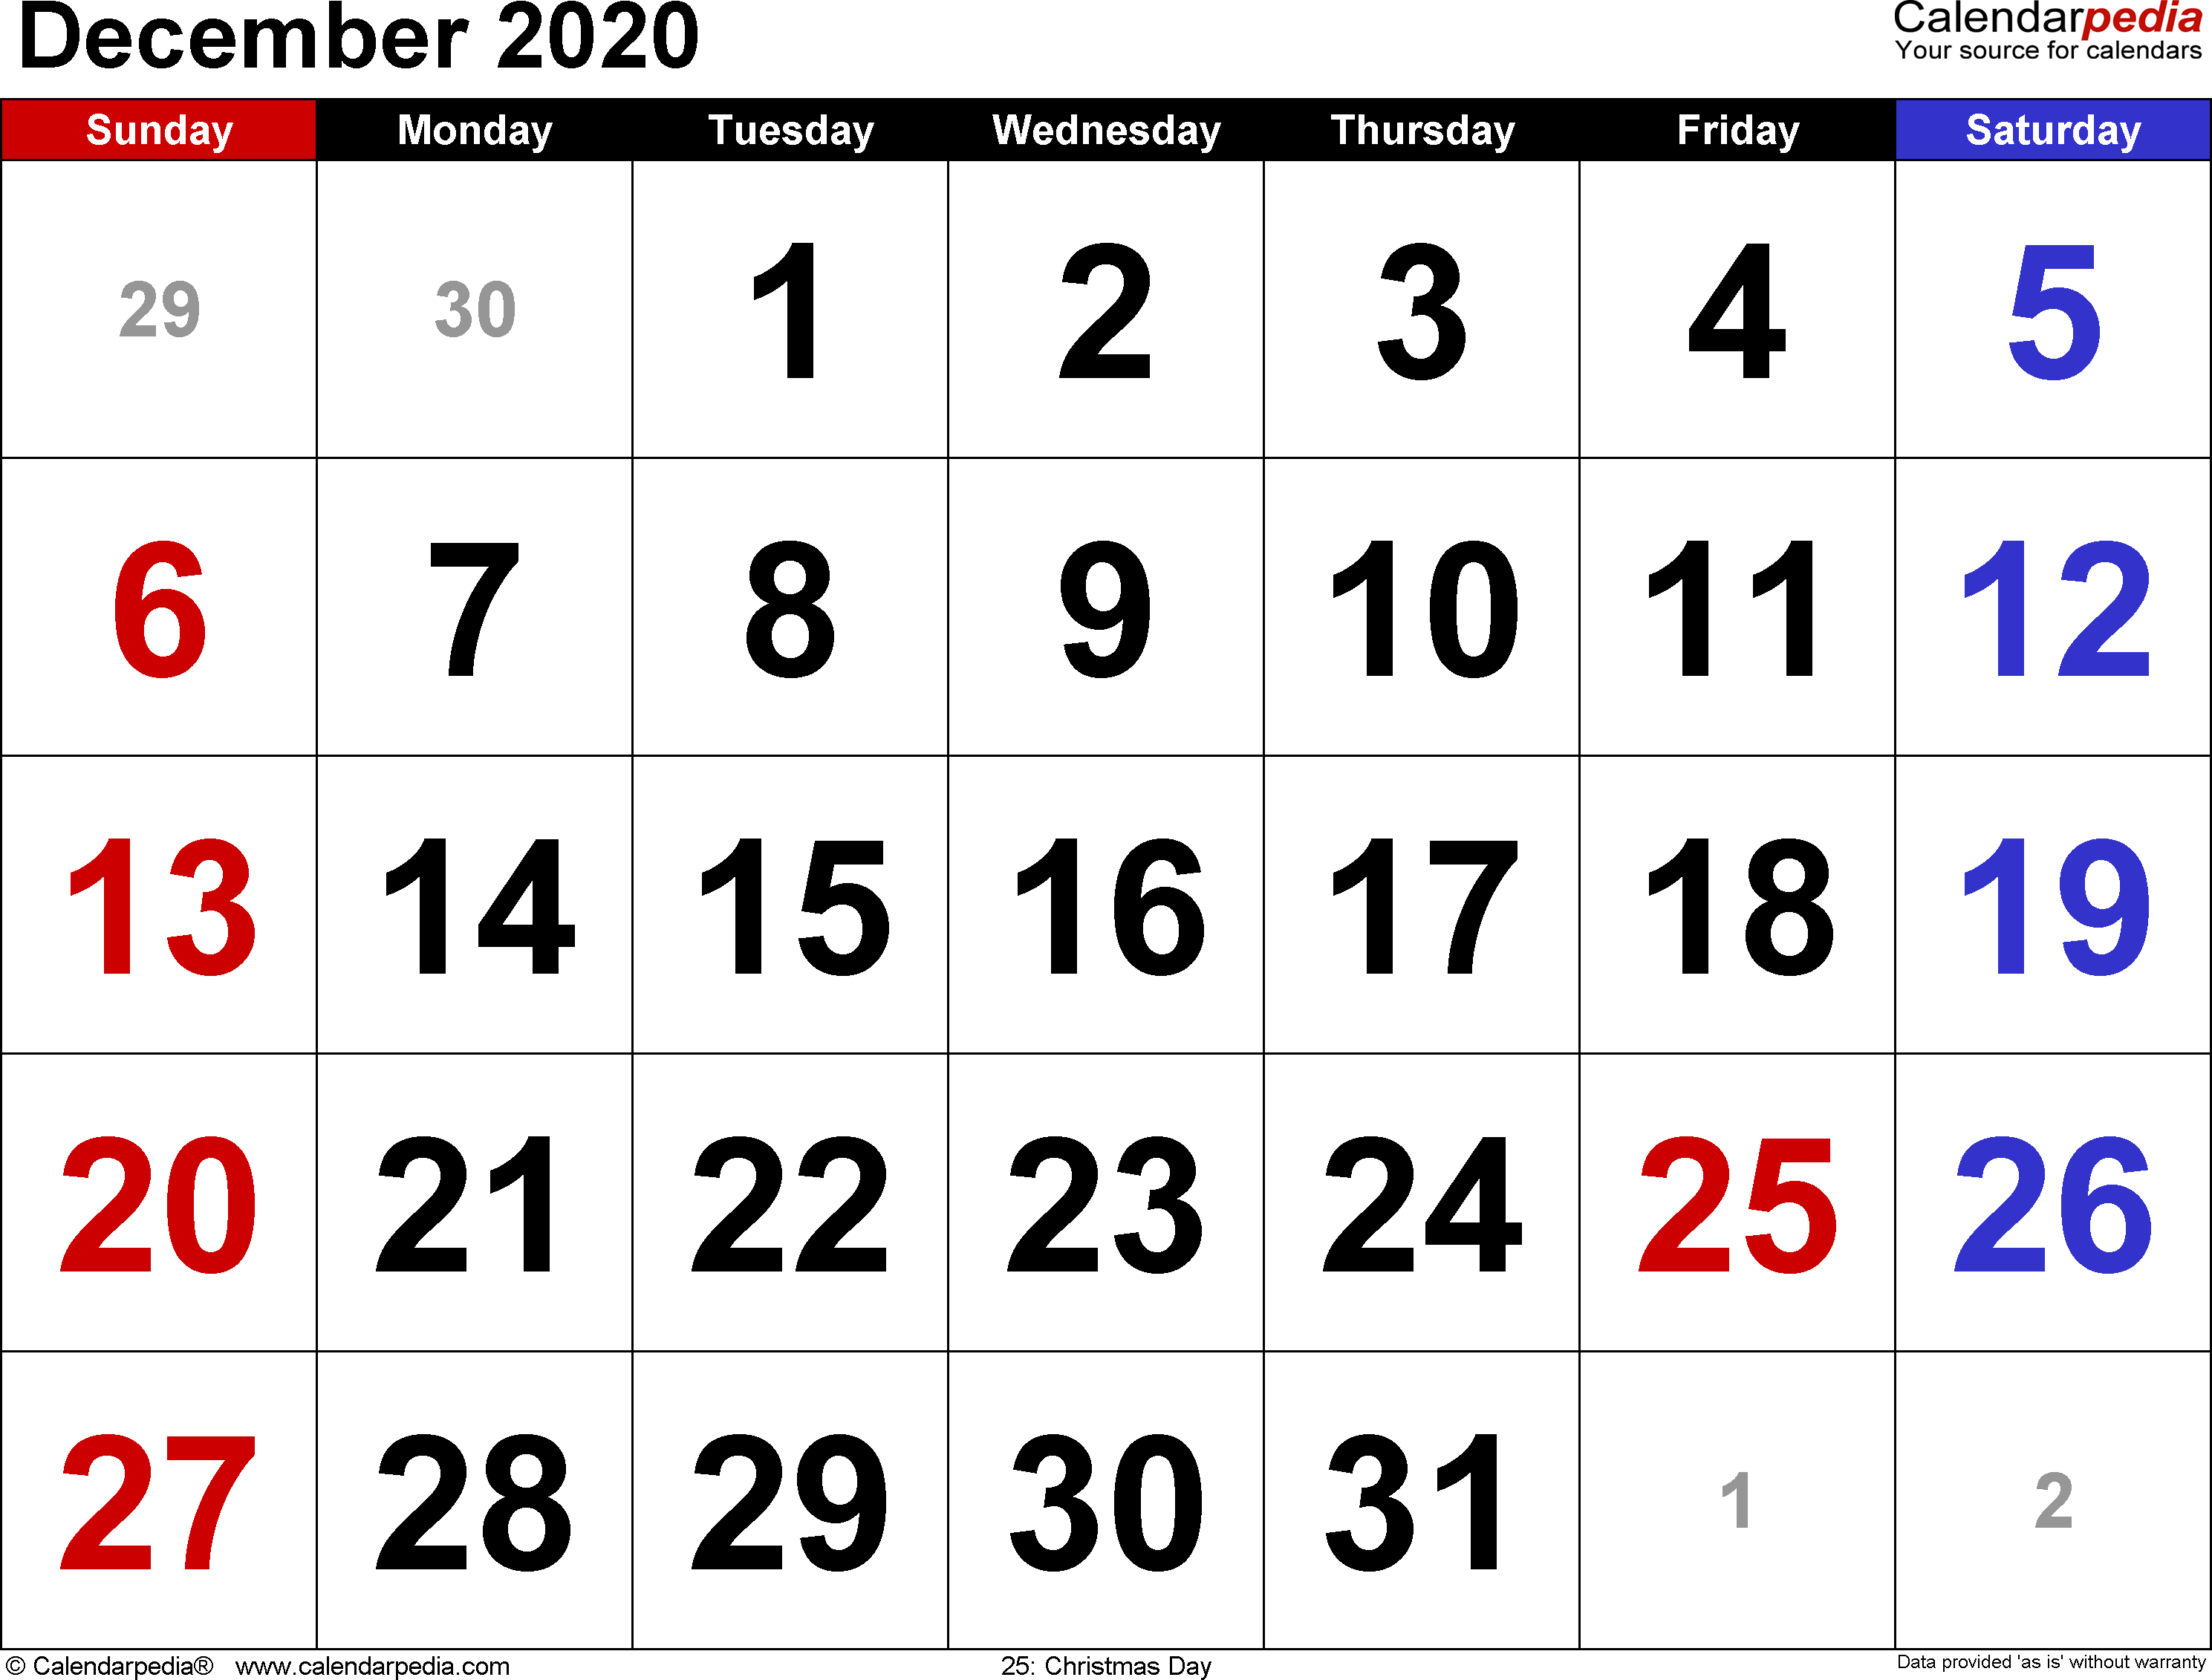 December 2020 Calendars For Word Excel Pdf